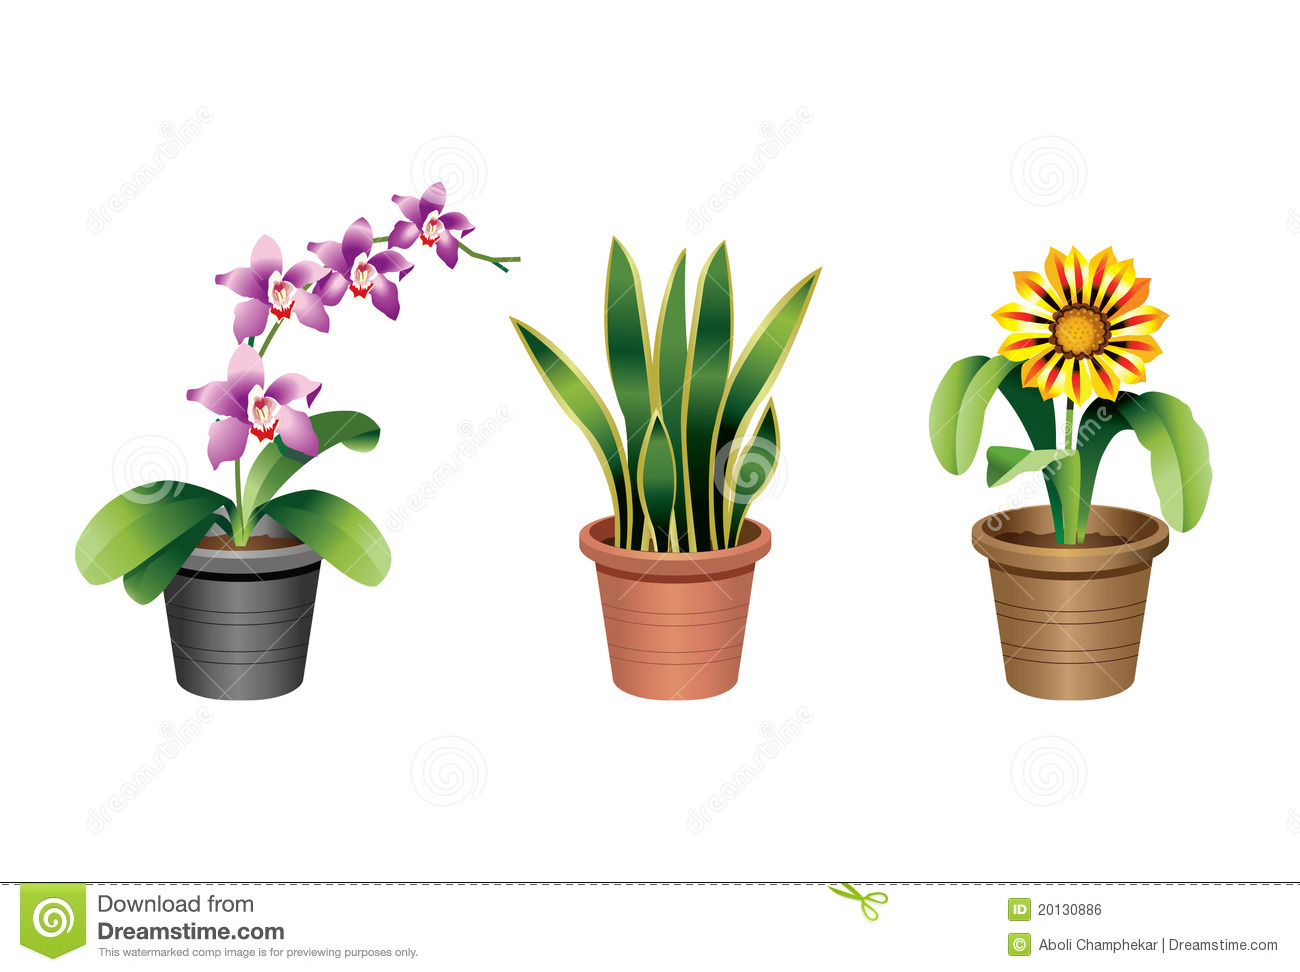 Indoor home and office plants royalty free stock image image 20130886 - Plants in home ...